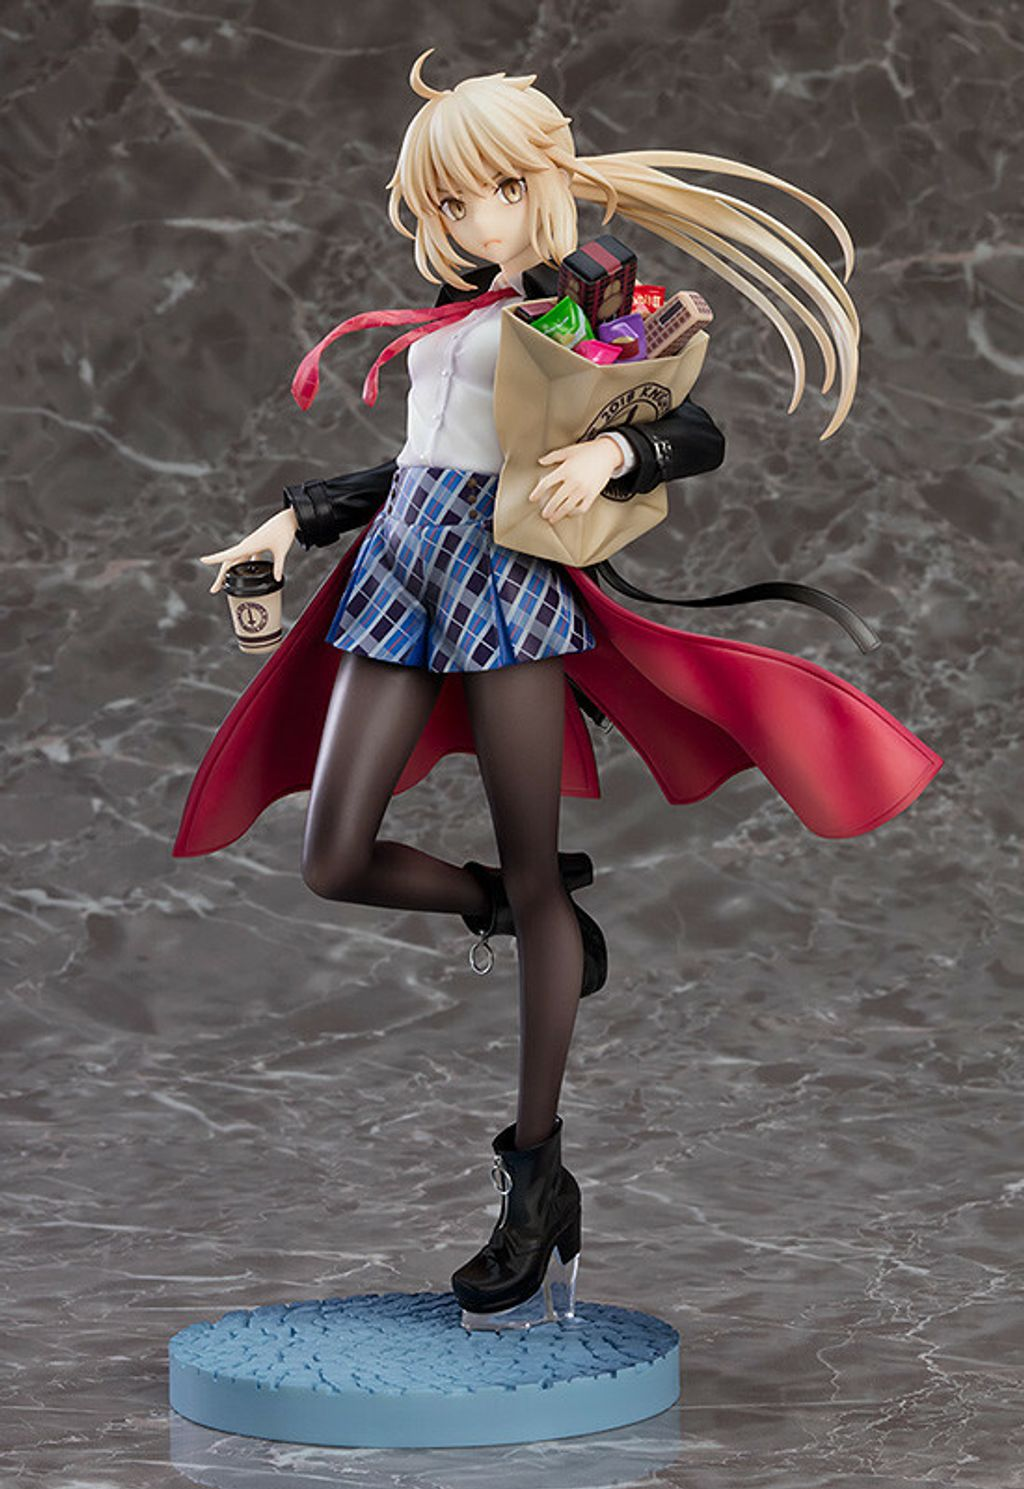 SaberAltria Pendragon (Alter) Heroic Spirit Traveling Outfit Ver..jpg